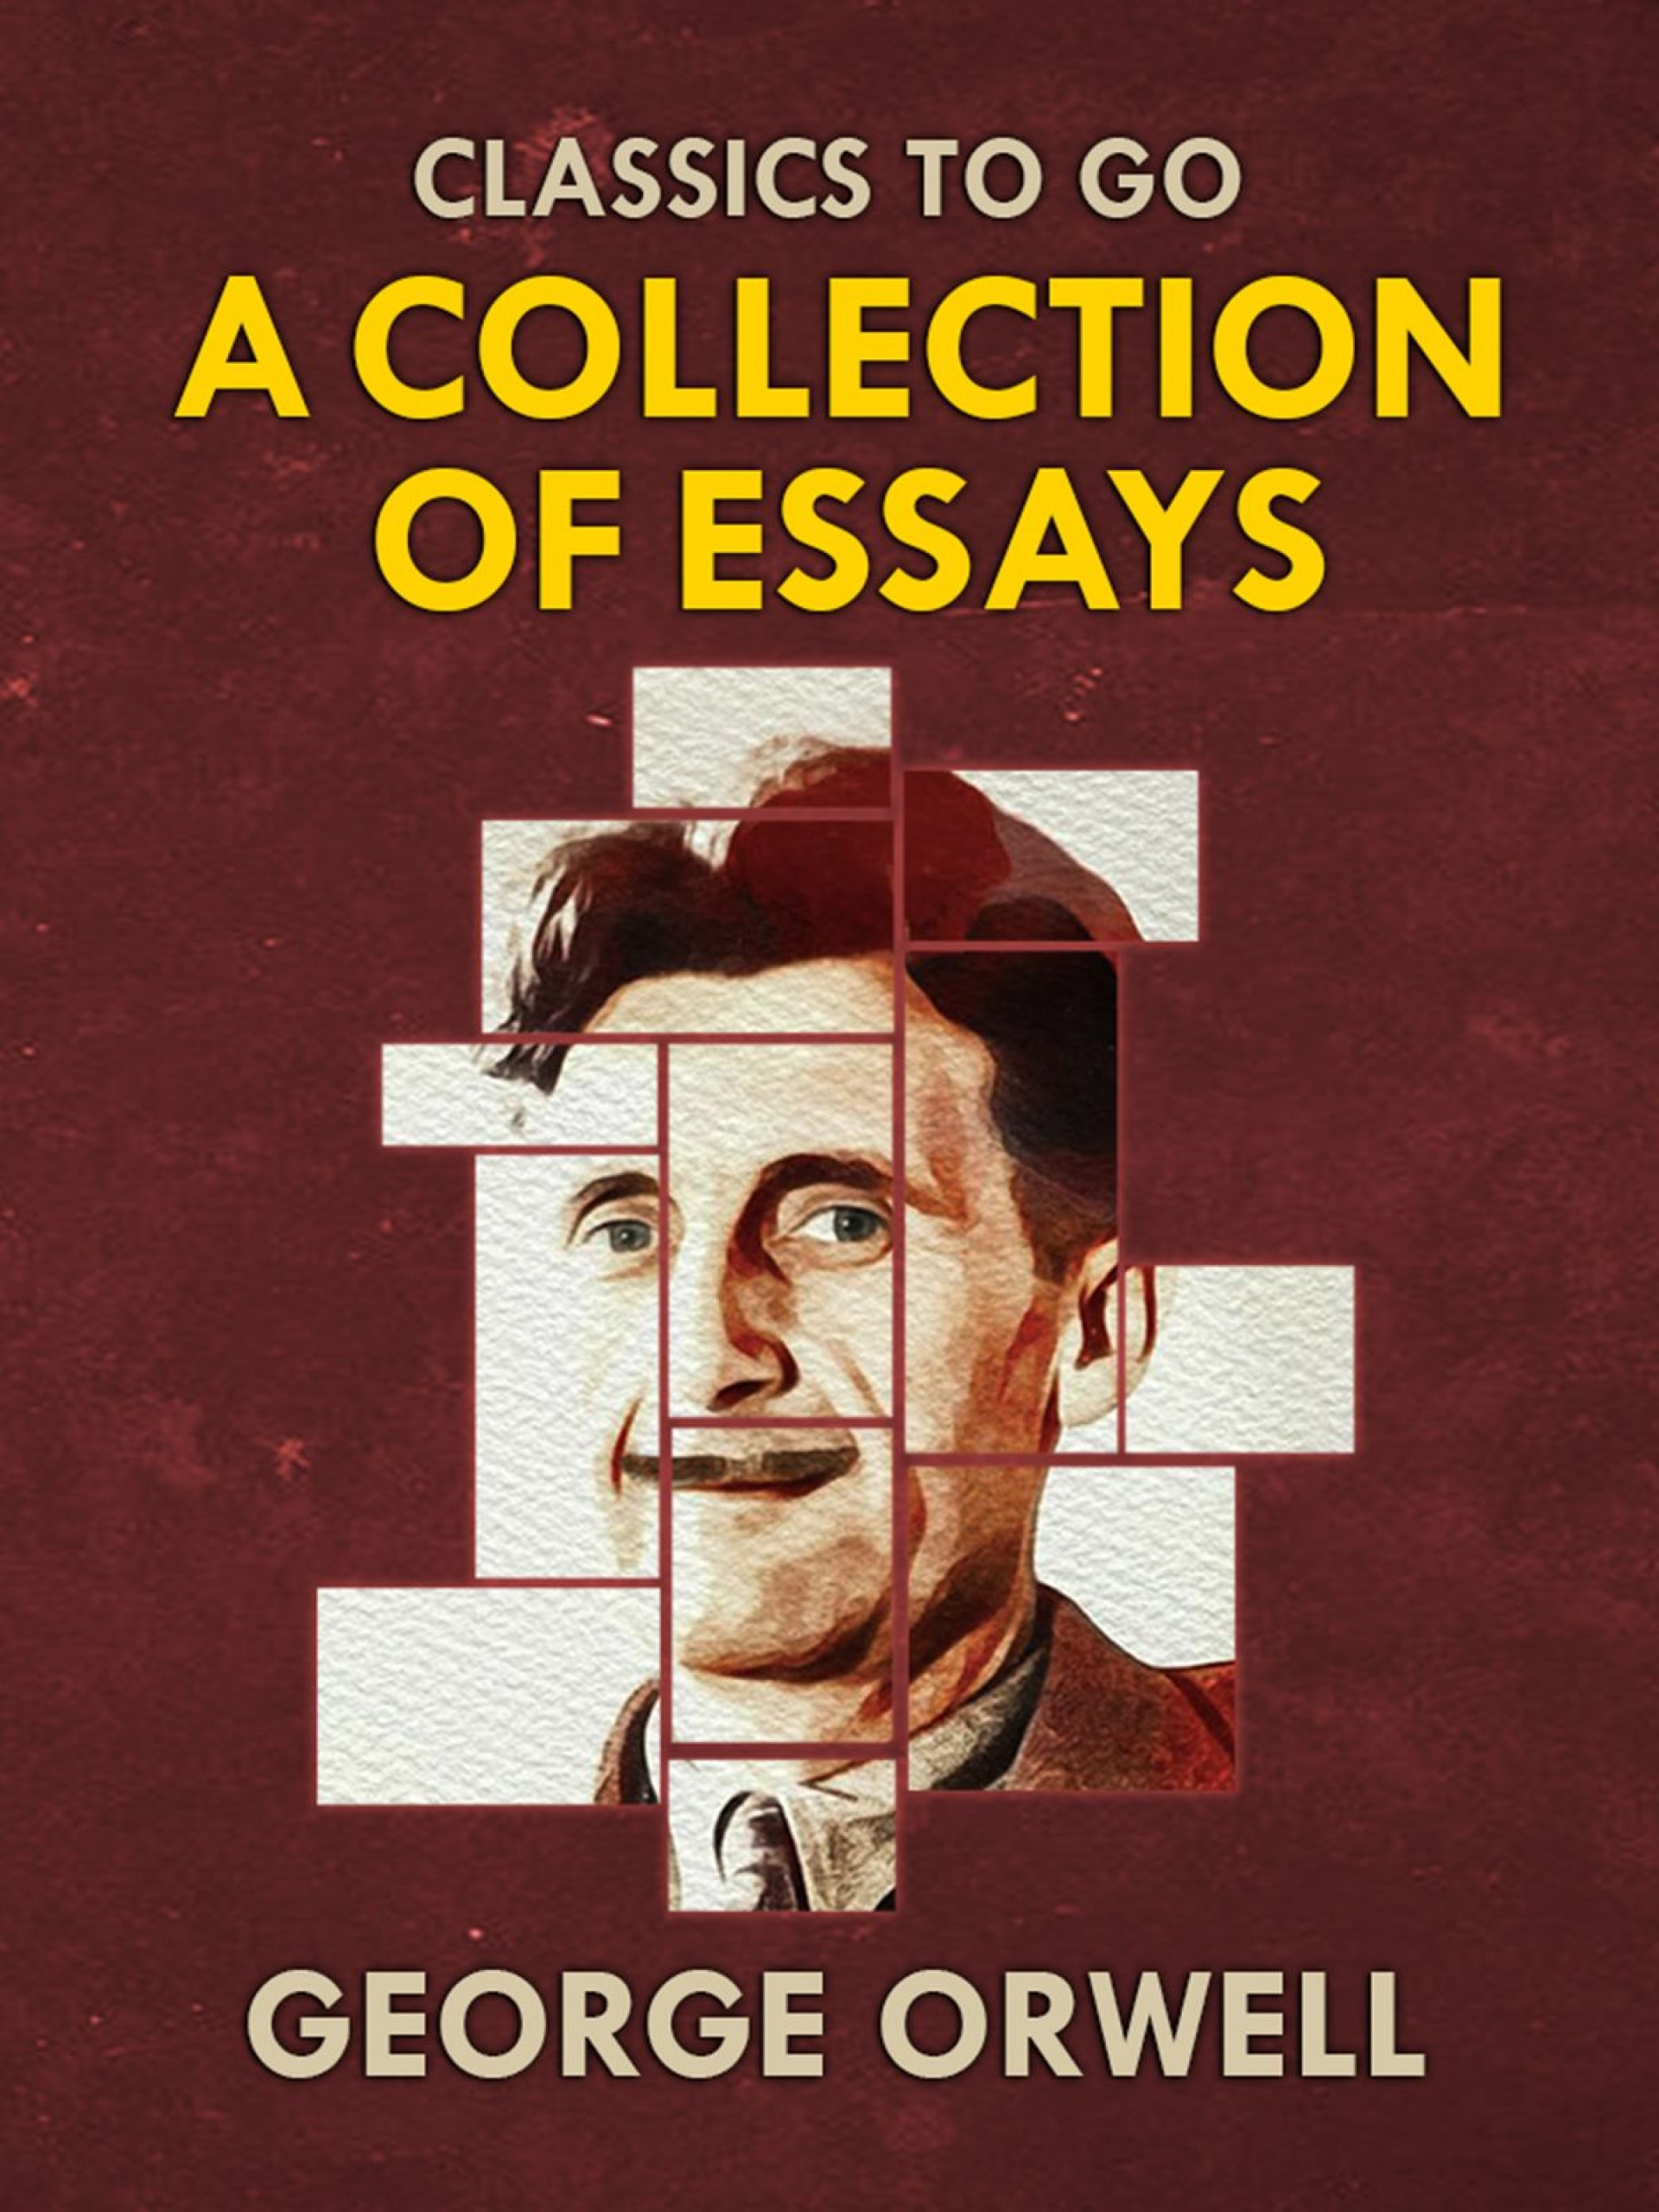 024 Collections Of George Orwell Essays Essay Frightening 1984 Summary Collected Pdf On Writing 1920